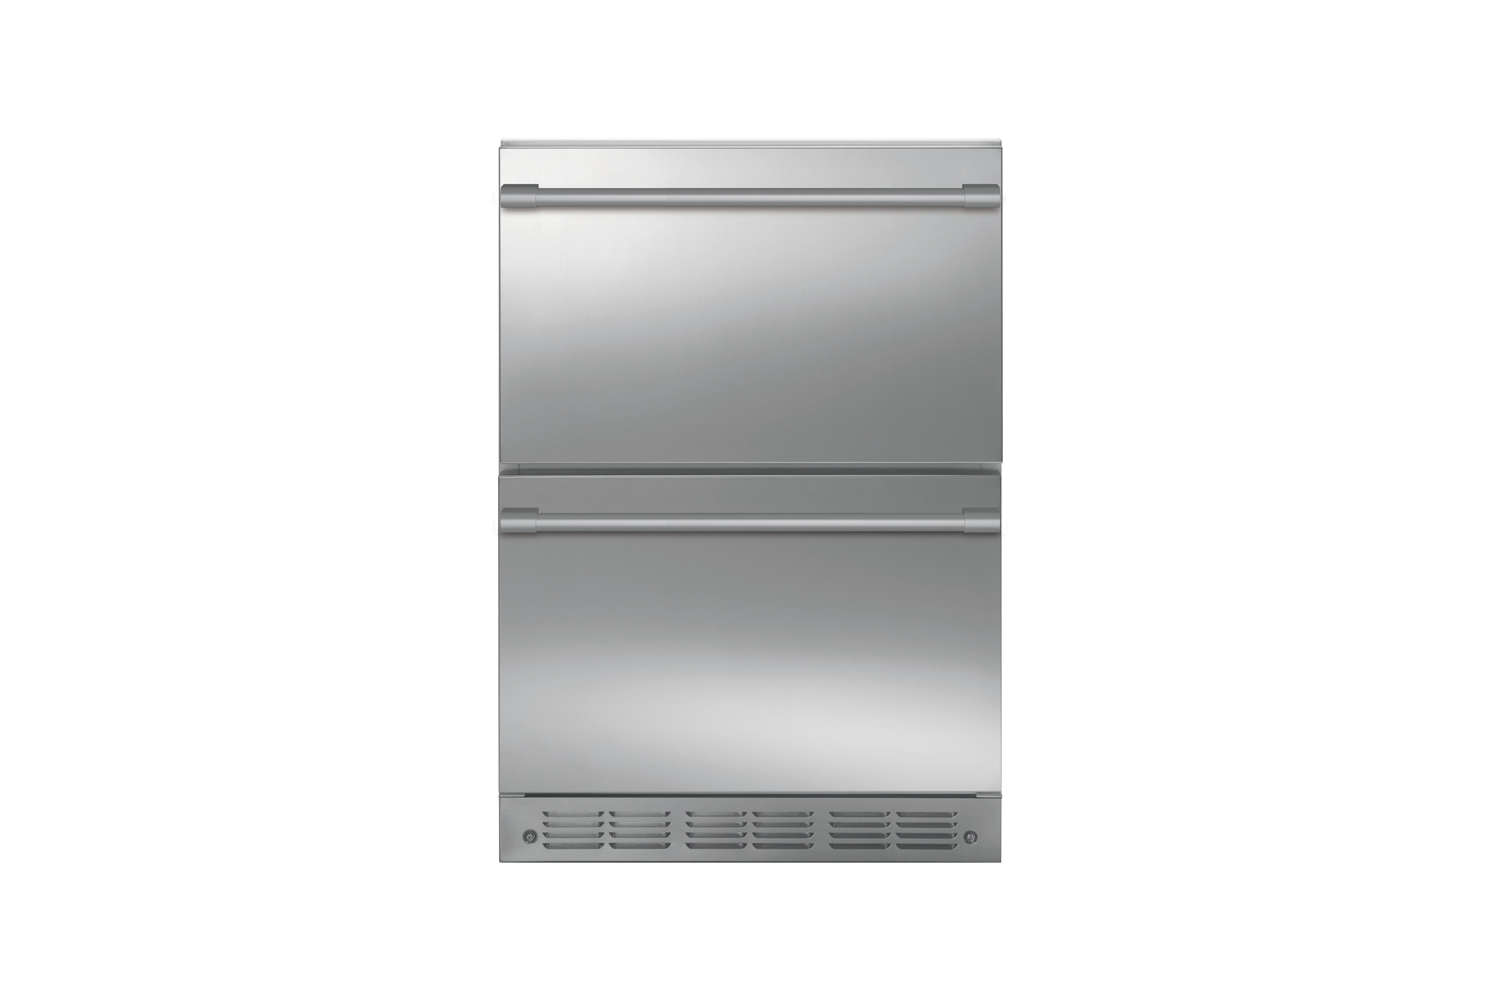 10 Easy Pieces Choosing An Undercounter Refrigerator The Monogram 34 Inch Built In Double Drawer Refrigerator (ZIDS\240NSS) is \$\2,900 at AJ Madison.